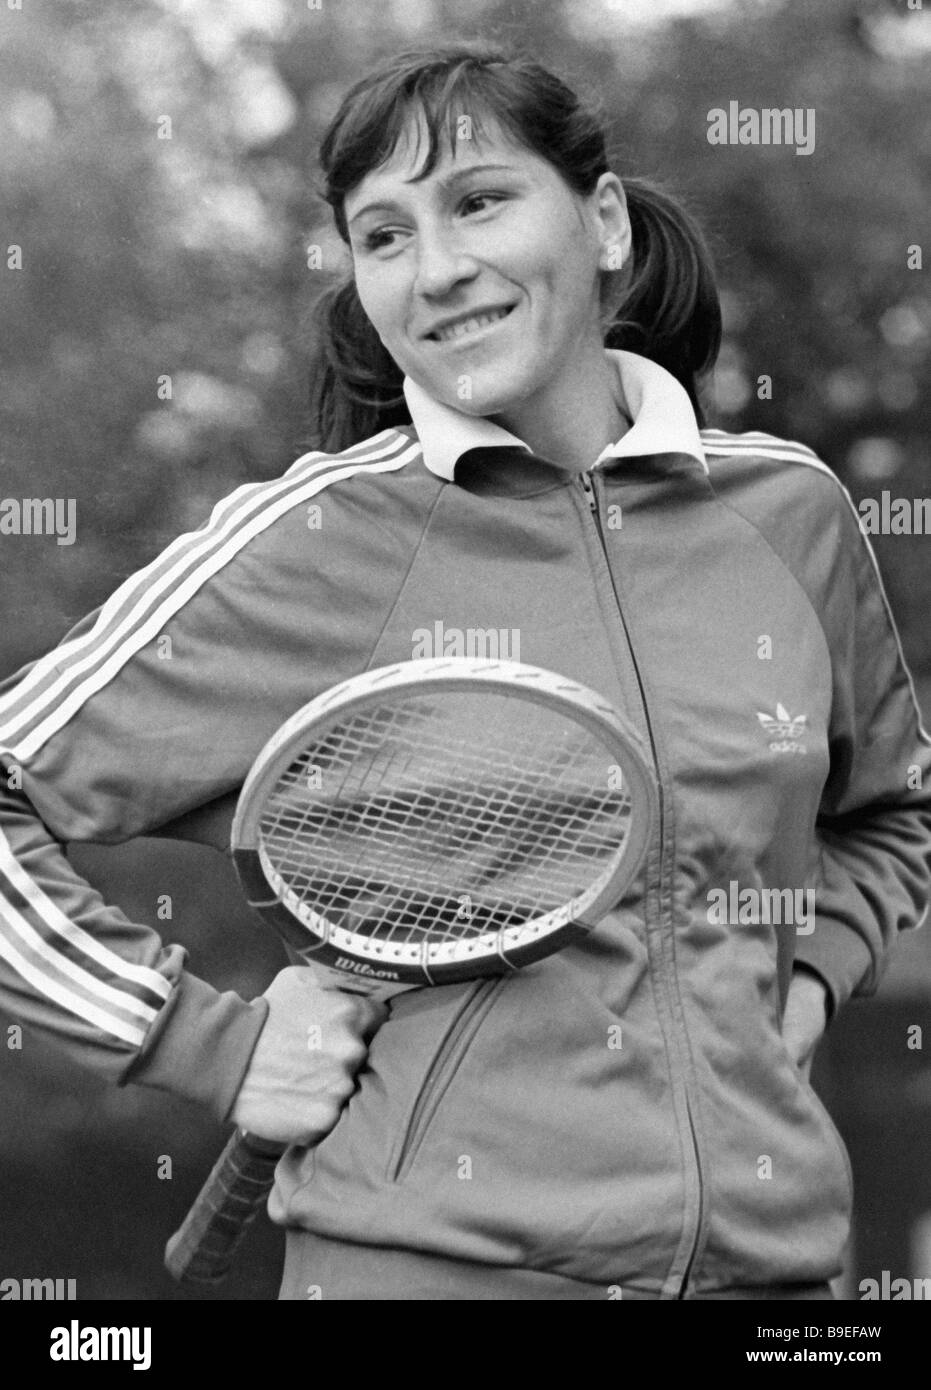 Soviet tennis player Olga Morozova Stock Royalty Free Image